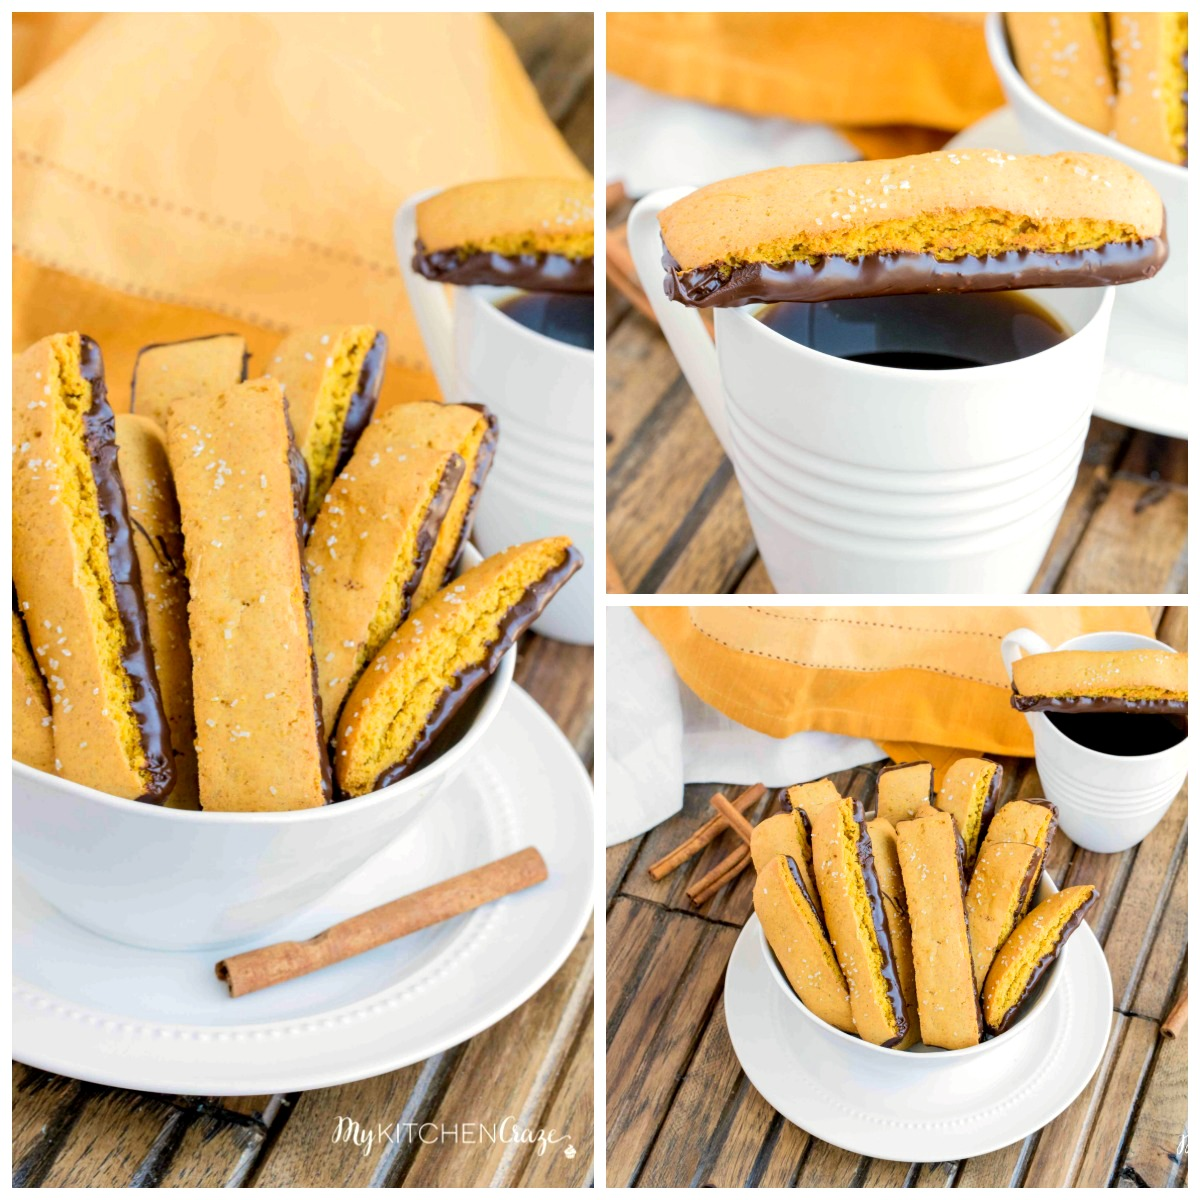 This homemade pumpkin biscotti dipped in dark chocolate is a perfect companion to your cup of coffee or tea.